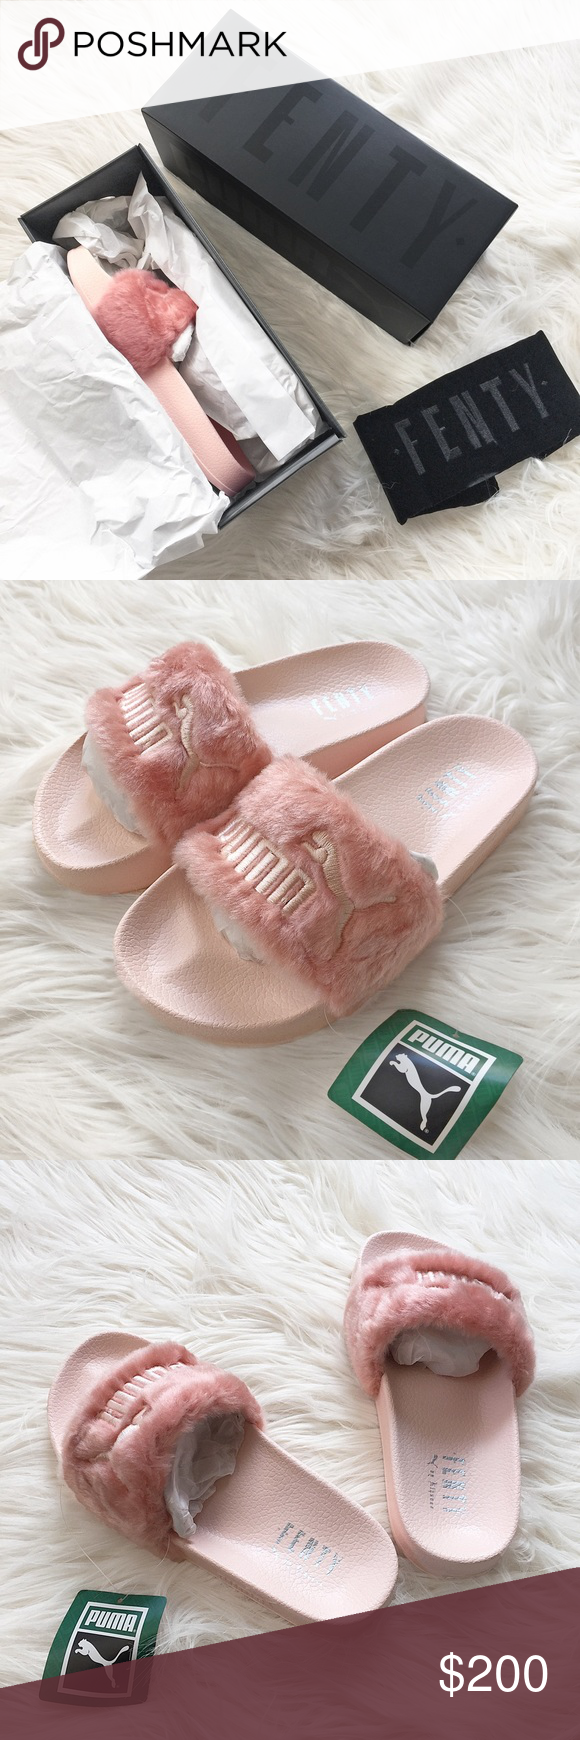 4d330d547cd Puma x Rihanna Fur Fenty Slides in Pink Puma x Rihanna Fur Fenty Slides in  Pink. Brand new with box + dust bag. Women s Size 6.5 and 7.5 available ...